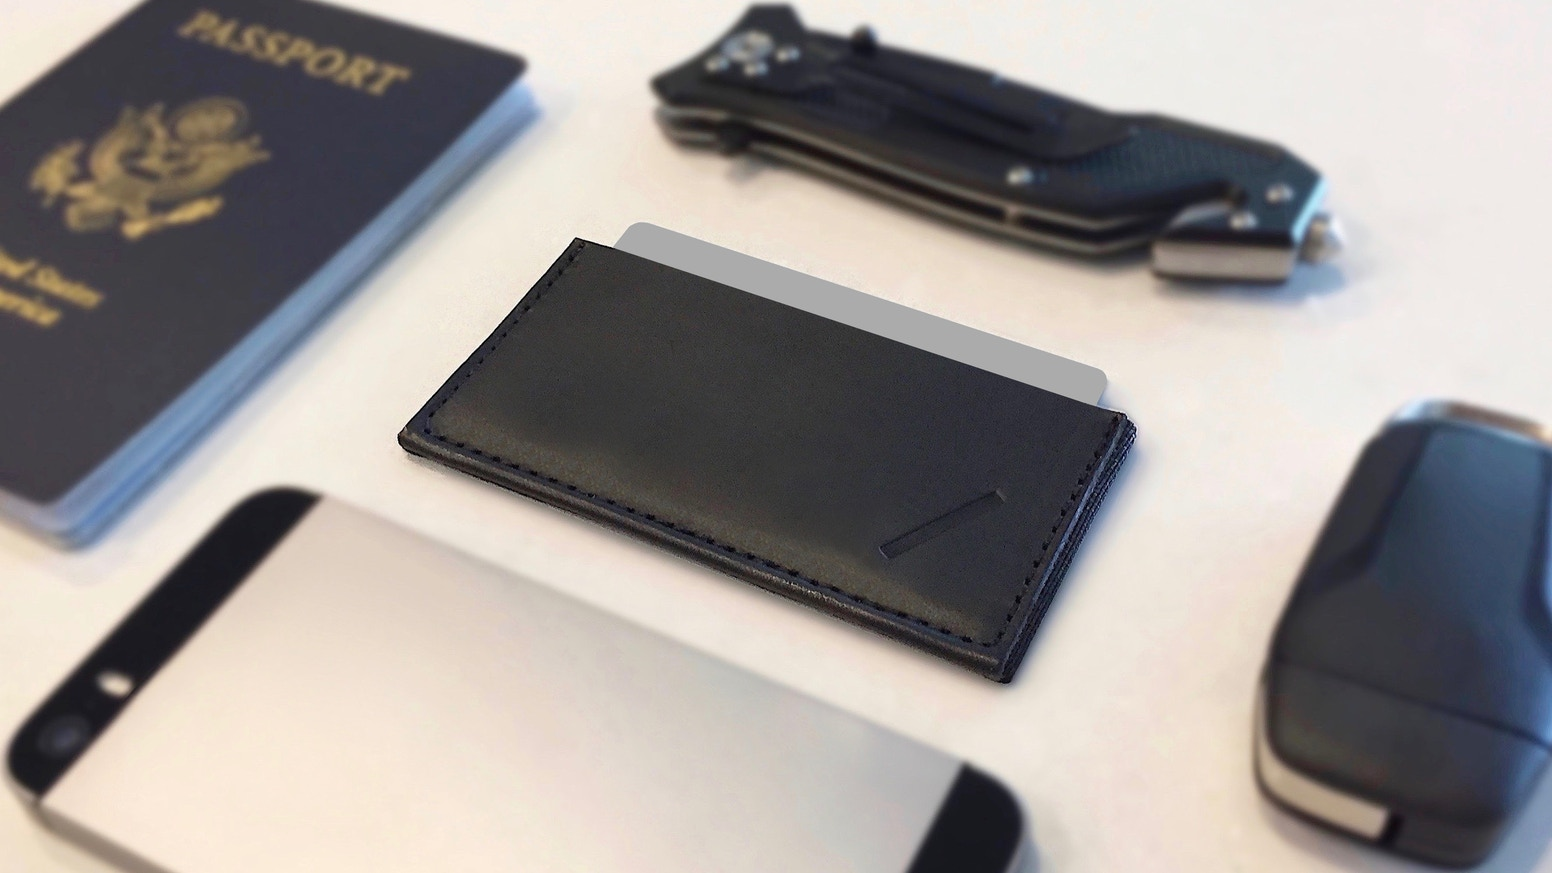 This updated slim wallet carries everything you need in style. A simple design with minimalists in mind. Handcrafted in the USA.